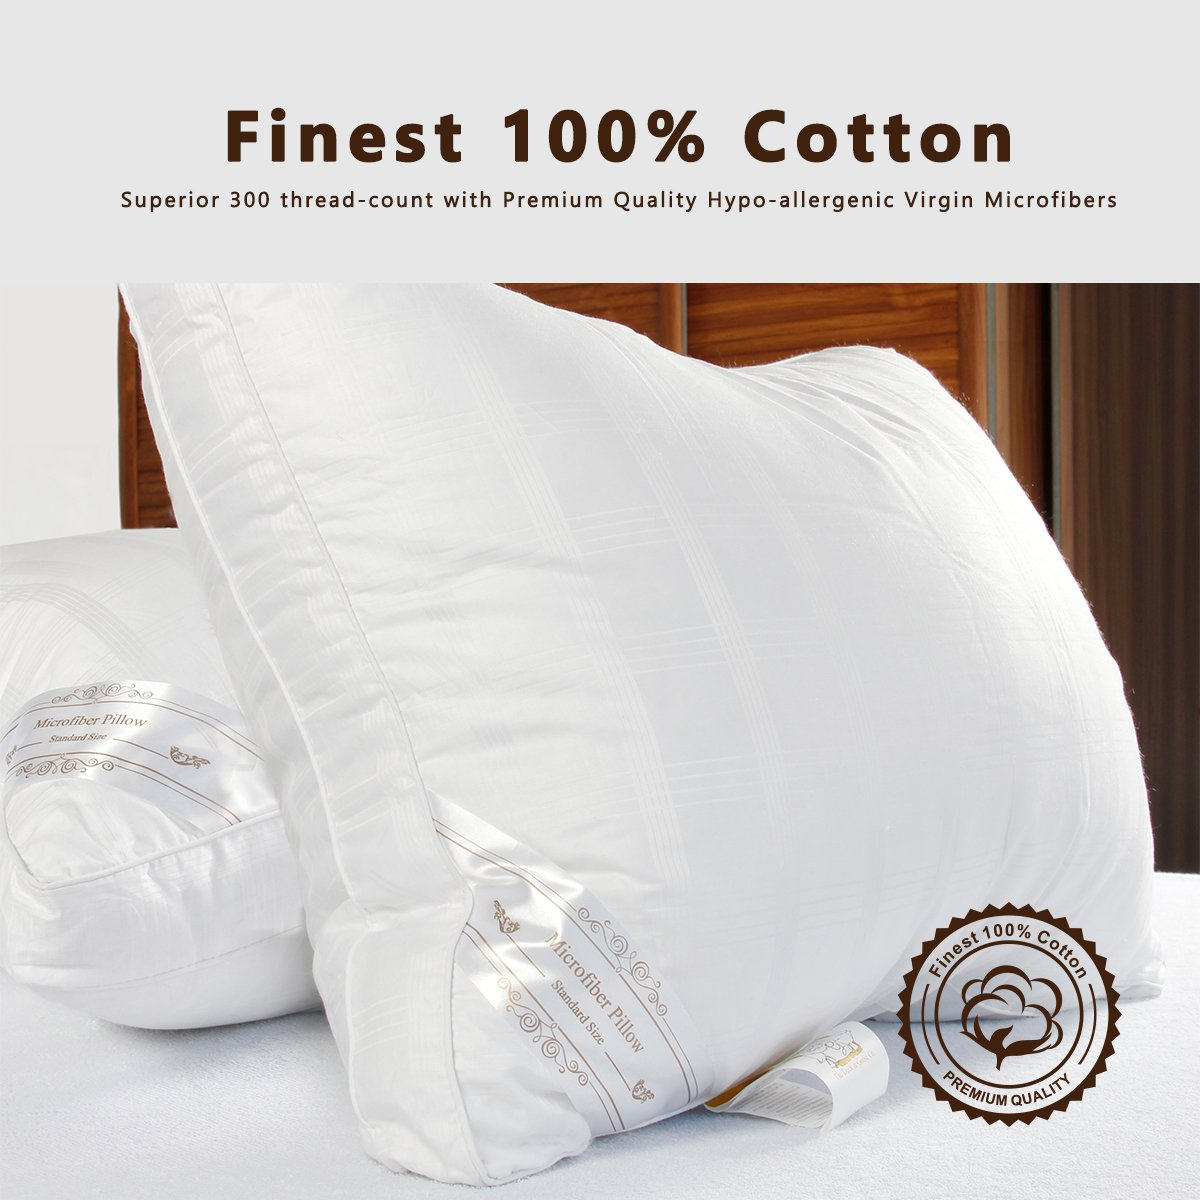 DUCK & GOOSE Premium Hotel Quality Luxury Down Alternative White Microfiber Pillow, Hypo-Allergenic, 100% Cotton with Elegant Design(48 * 74CM-19 * 29